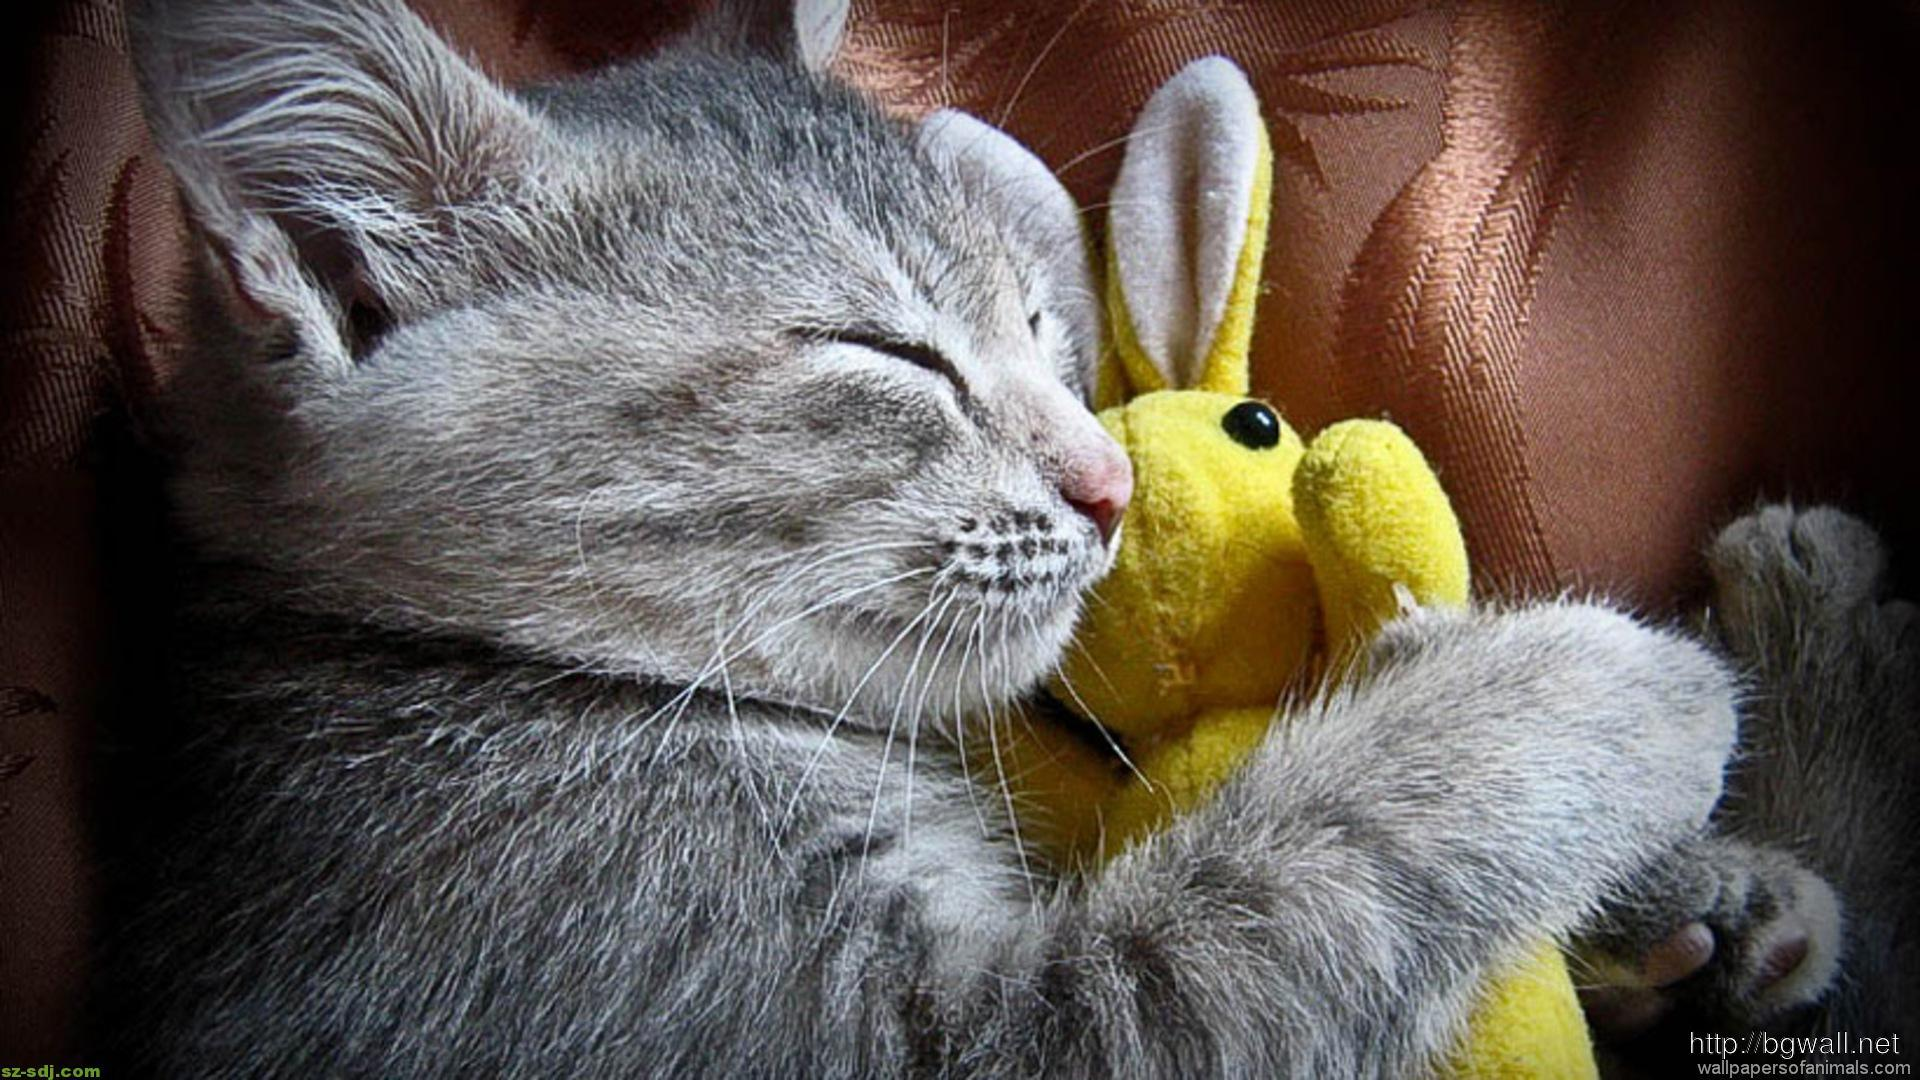 A Cute Cat Sleep With Her Bunny Wallpaper Image Widescreen Background Wallpaper Hd